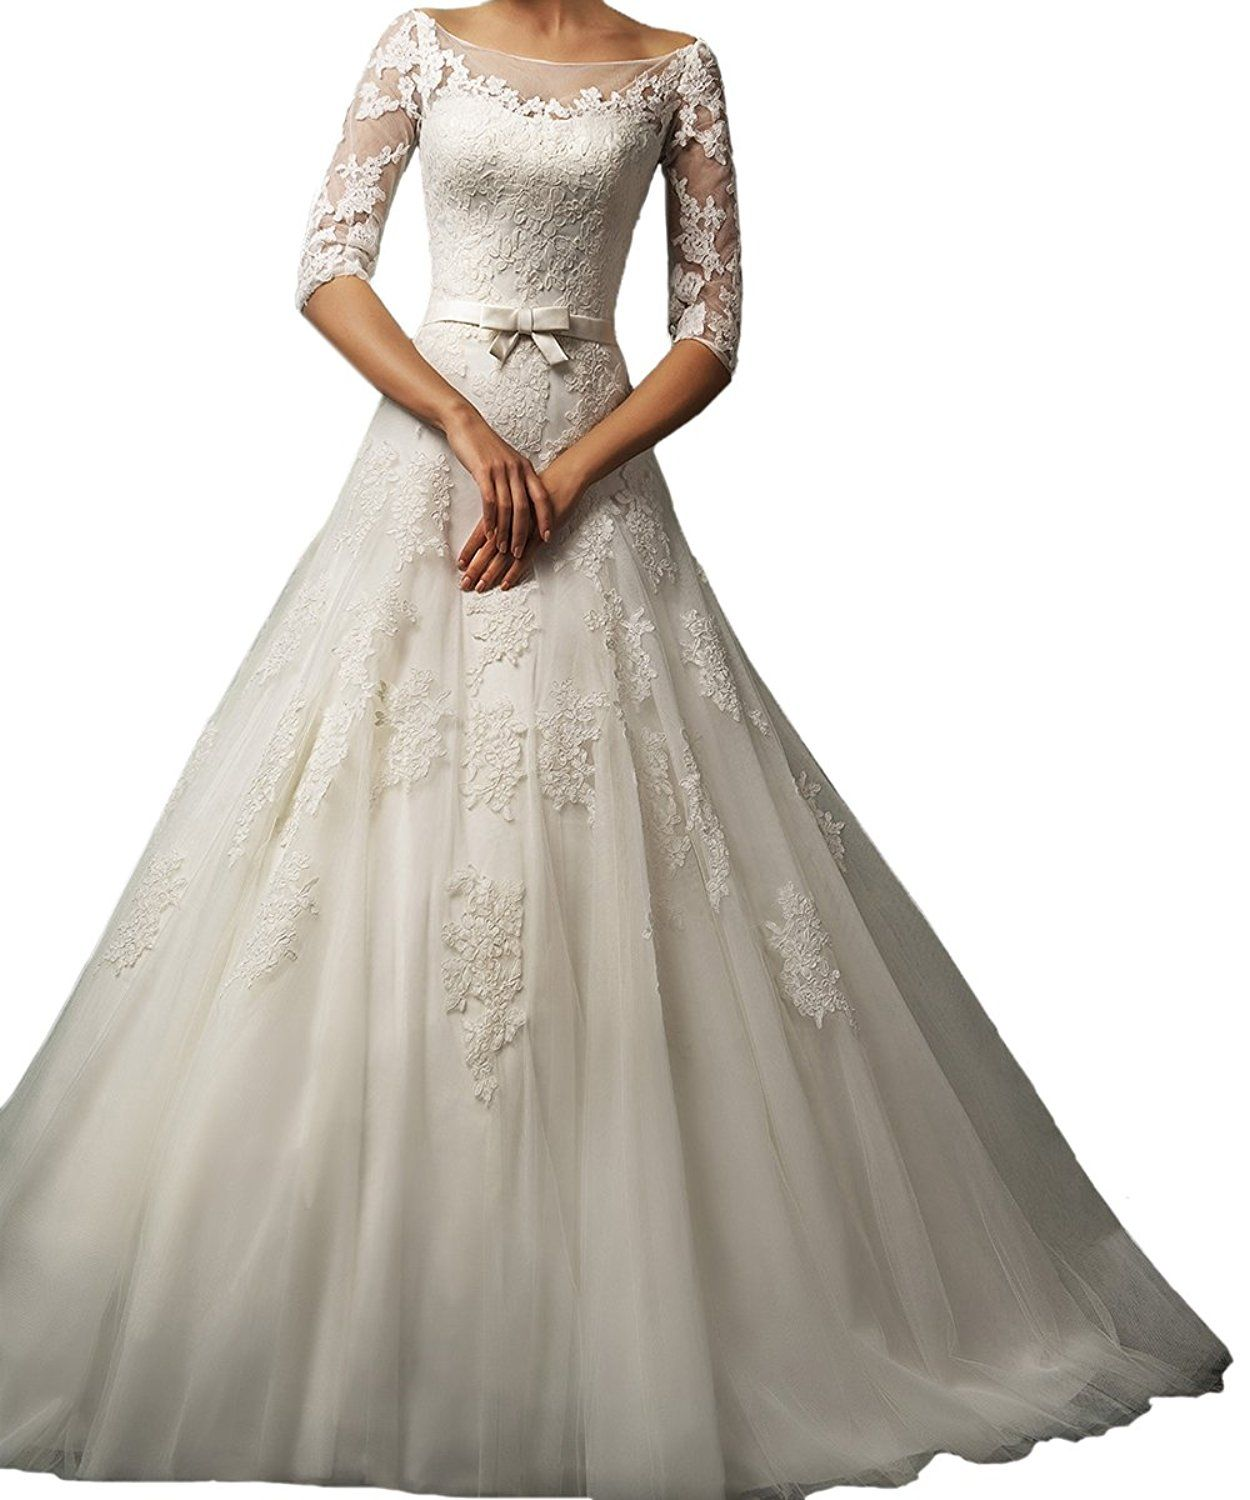 Honey qiao ivory lace wedding dresses long half sleeves bridal gowns